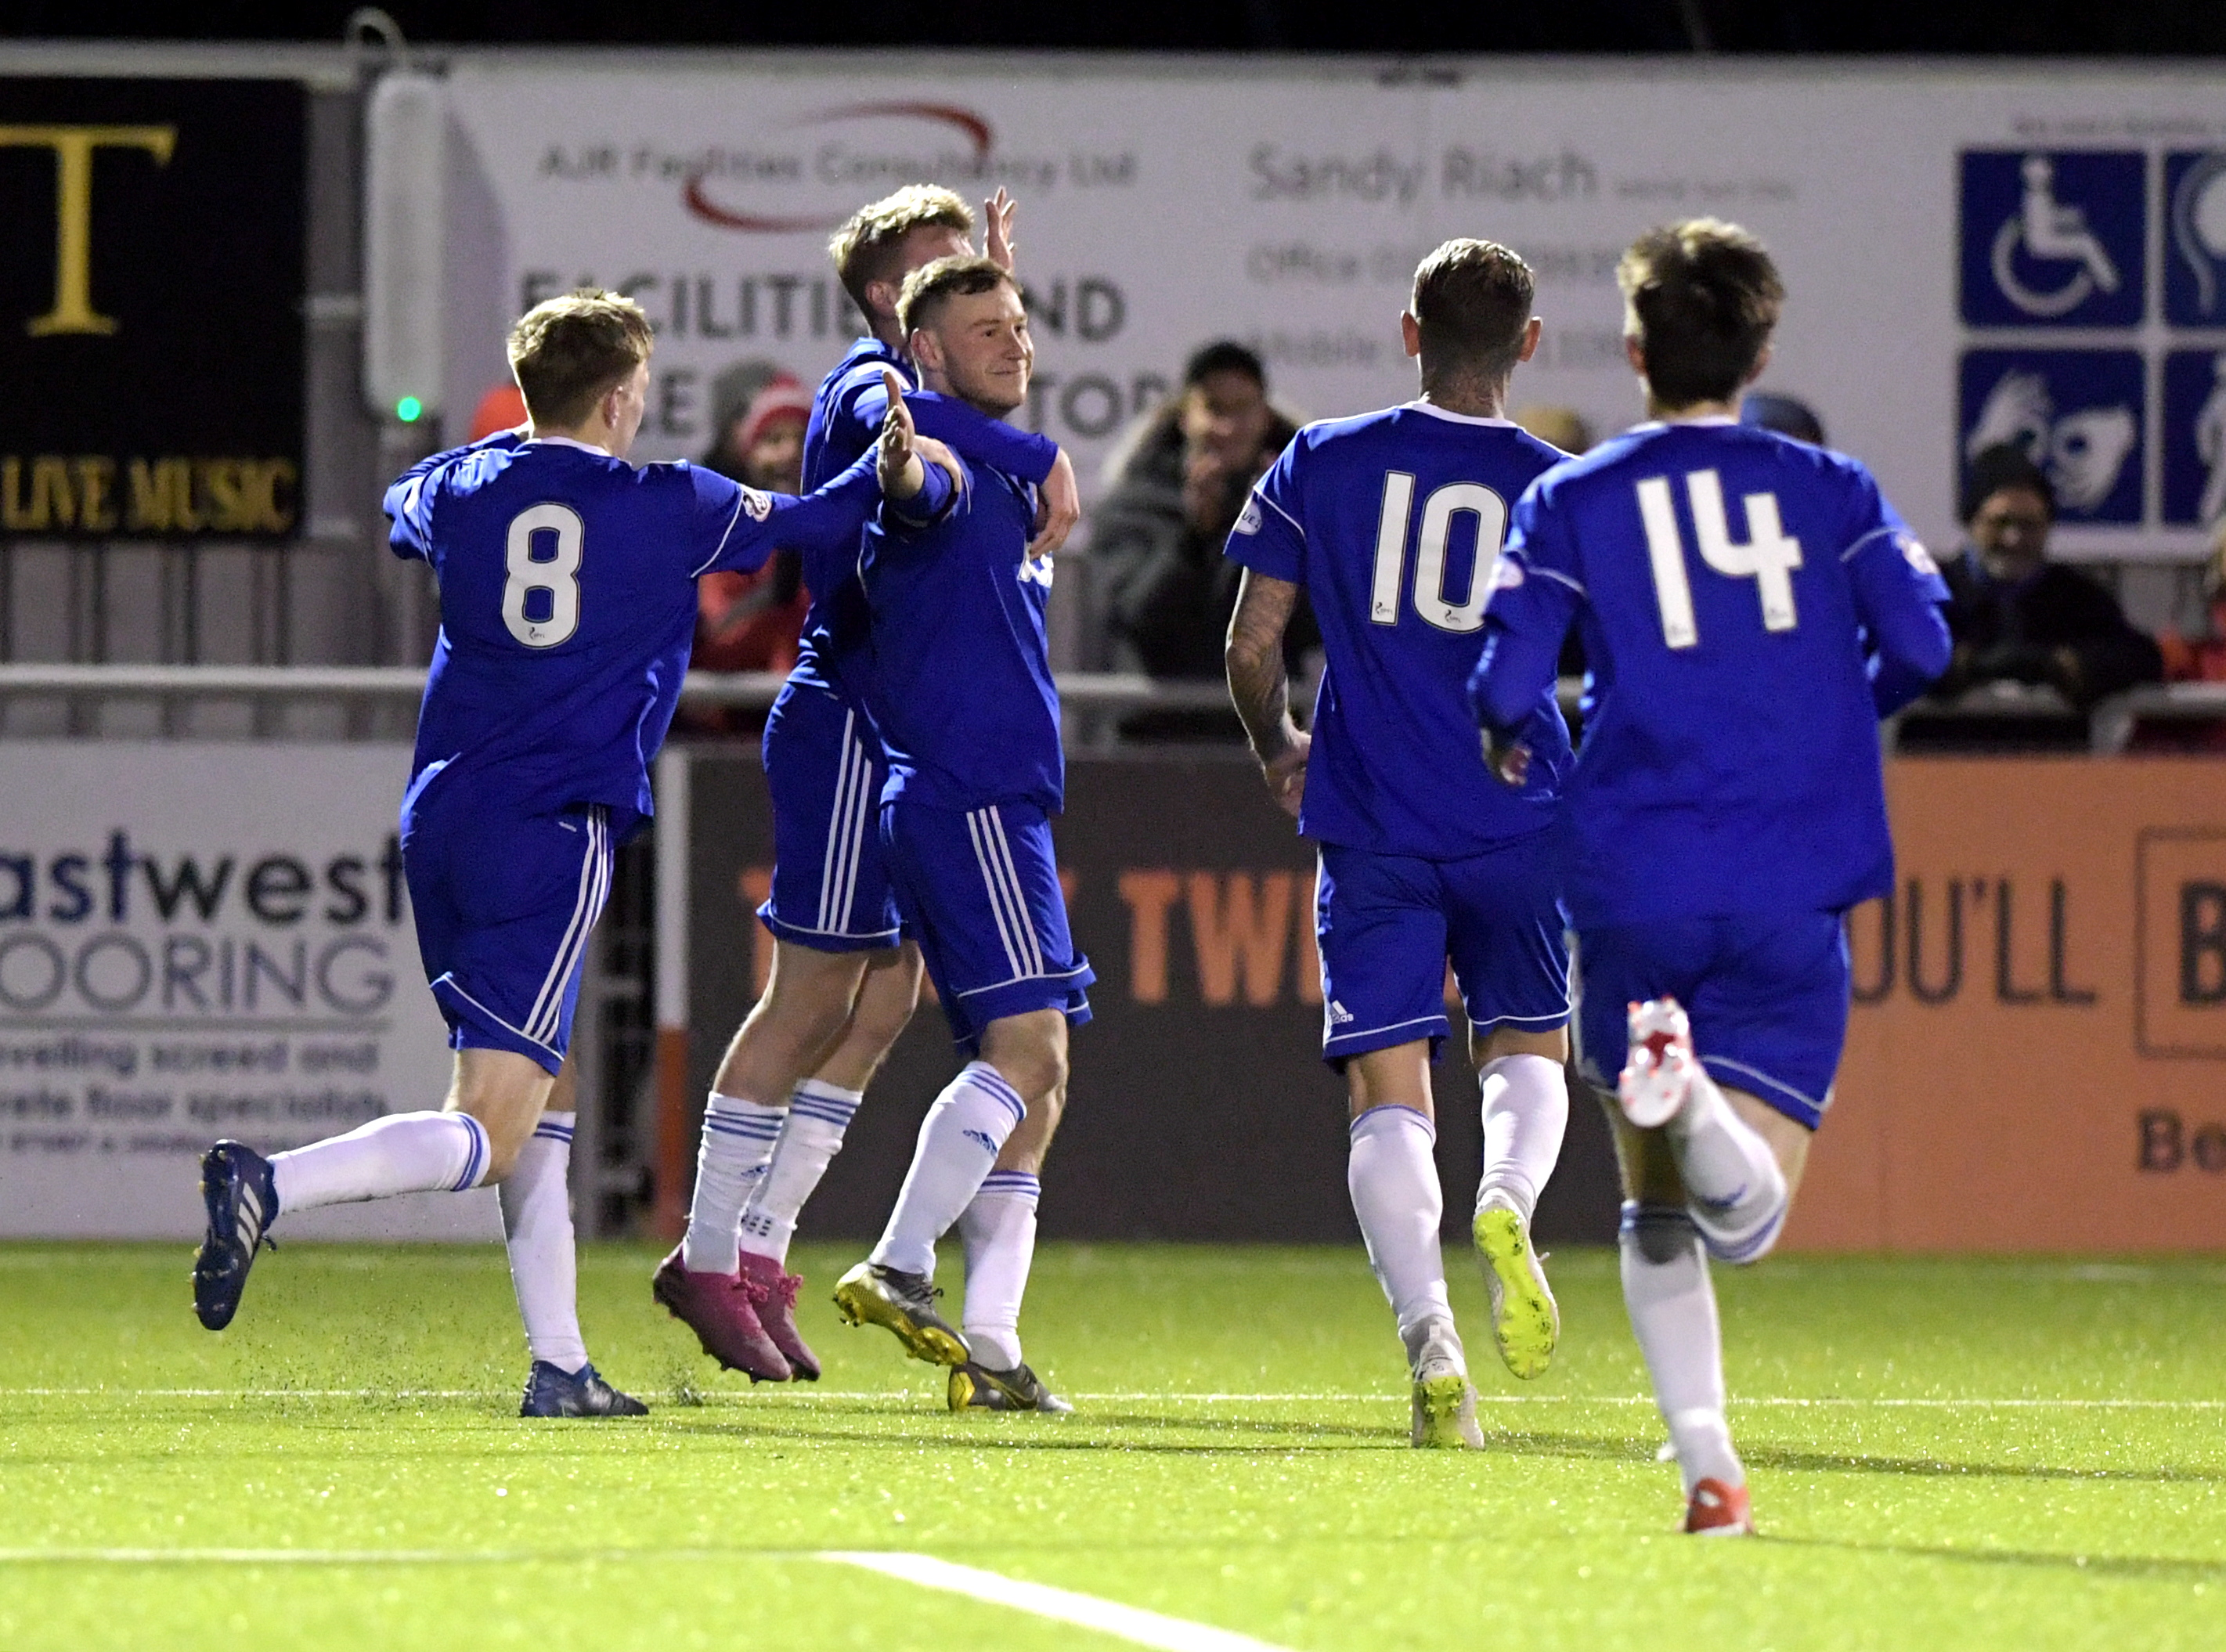 Cove celebrate Megginson's goal. Picture by Kath Flannery